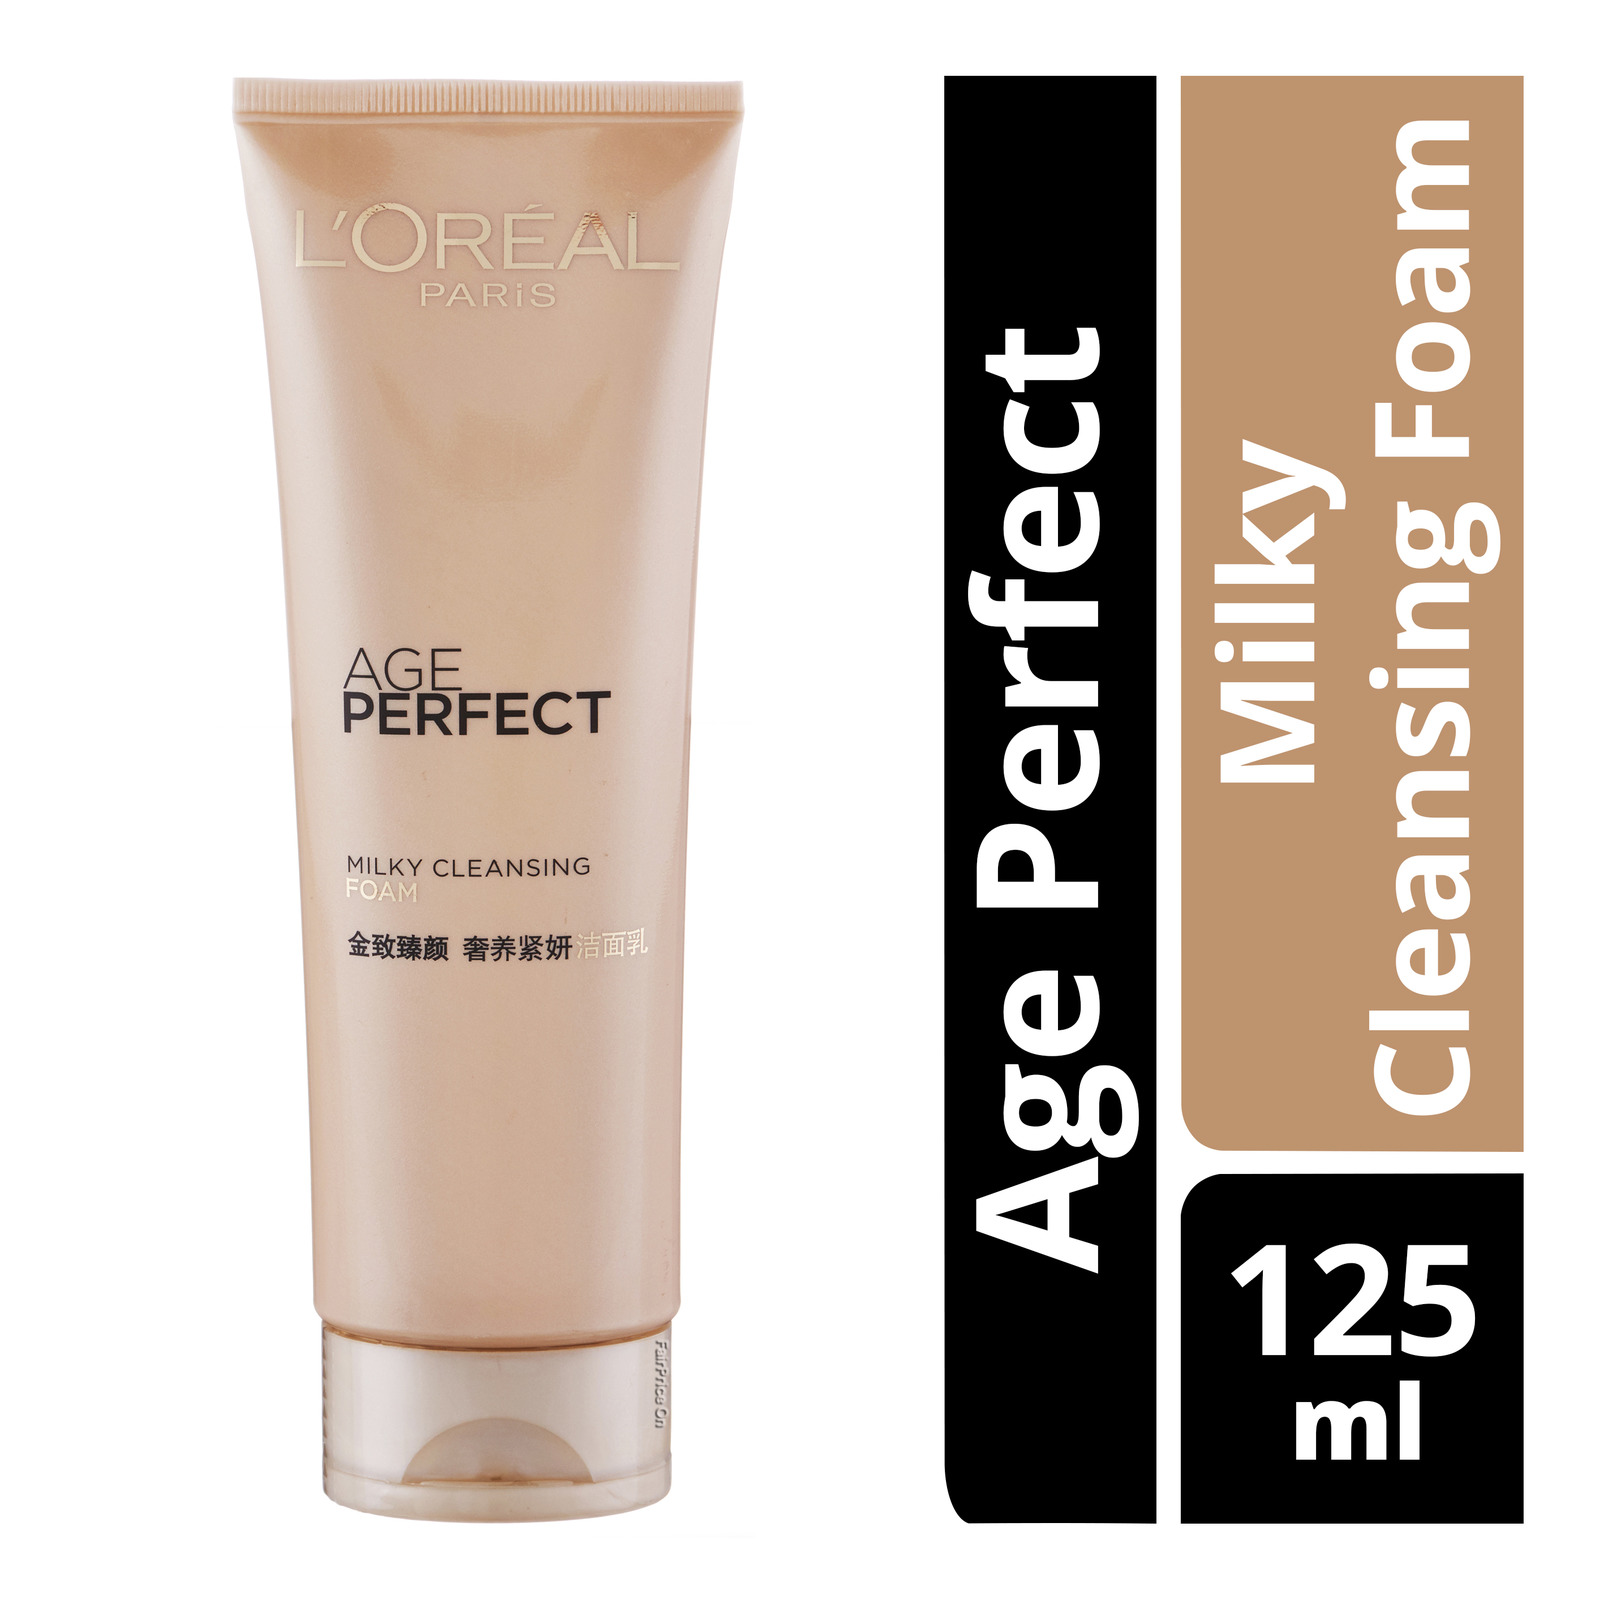 L'Oreal Paris Age Perfect Milky Cleansing Foam